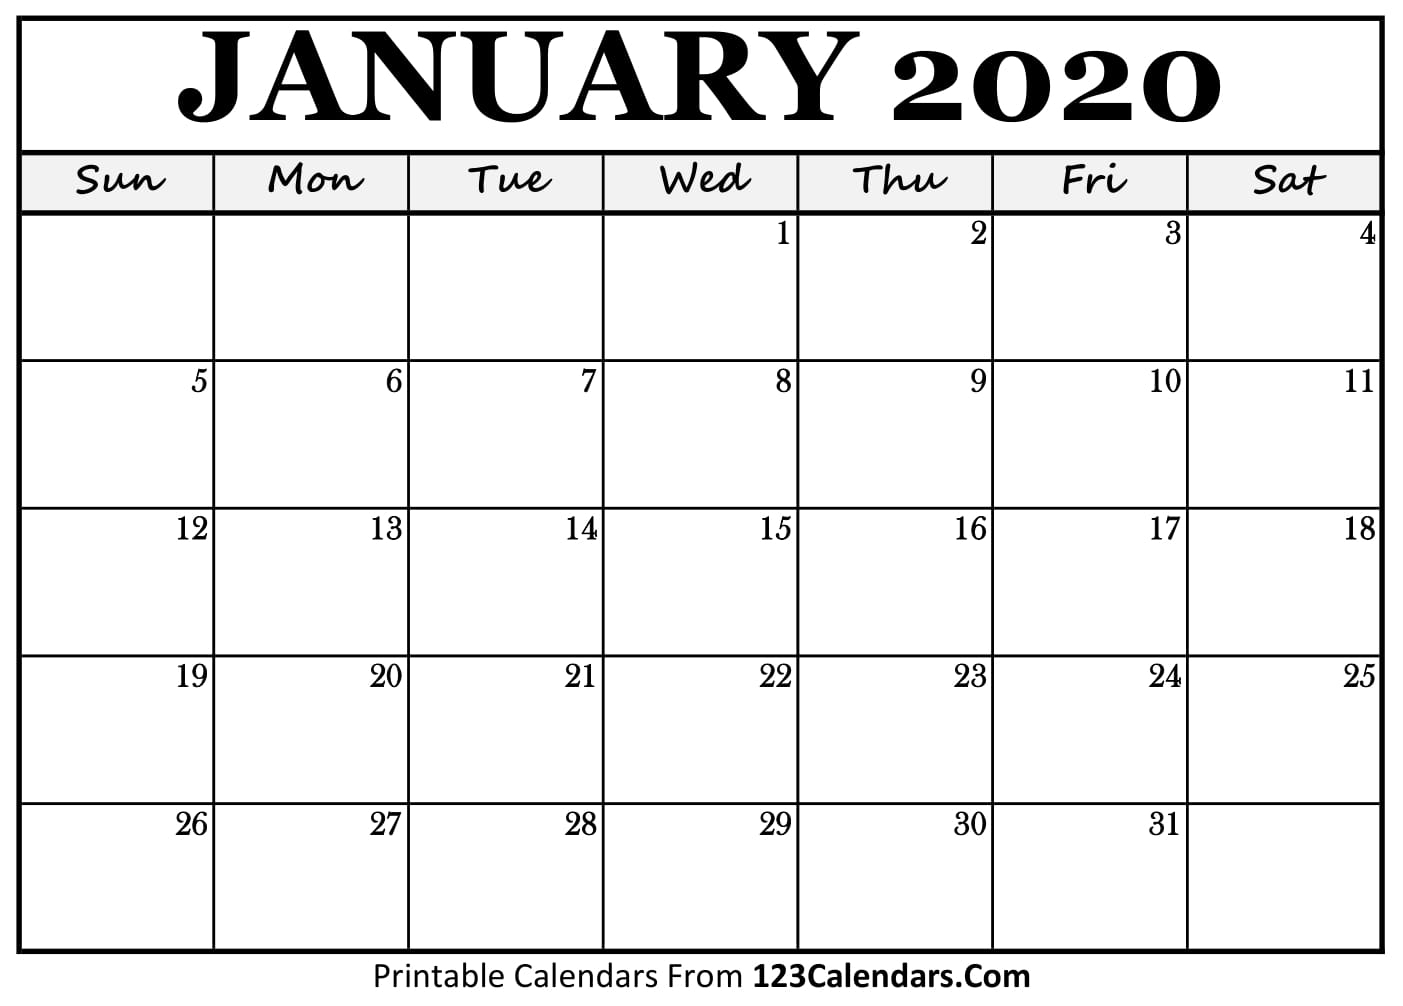 Free Printable Calendar | 123Calendars pertaining to 123 Calendars December 2020